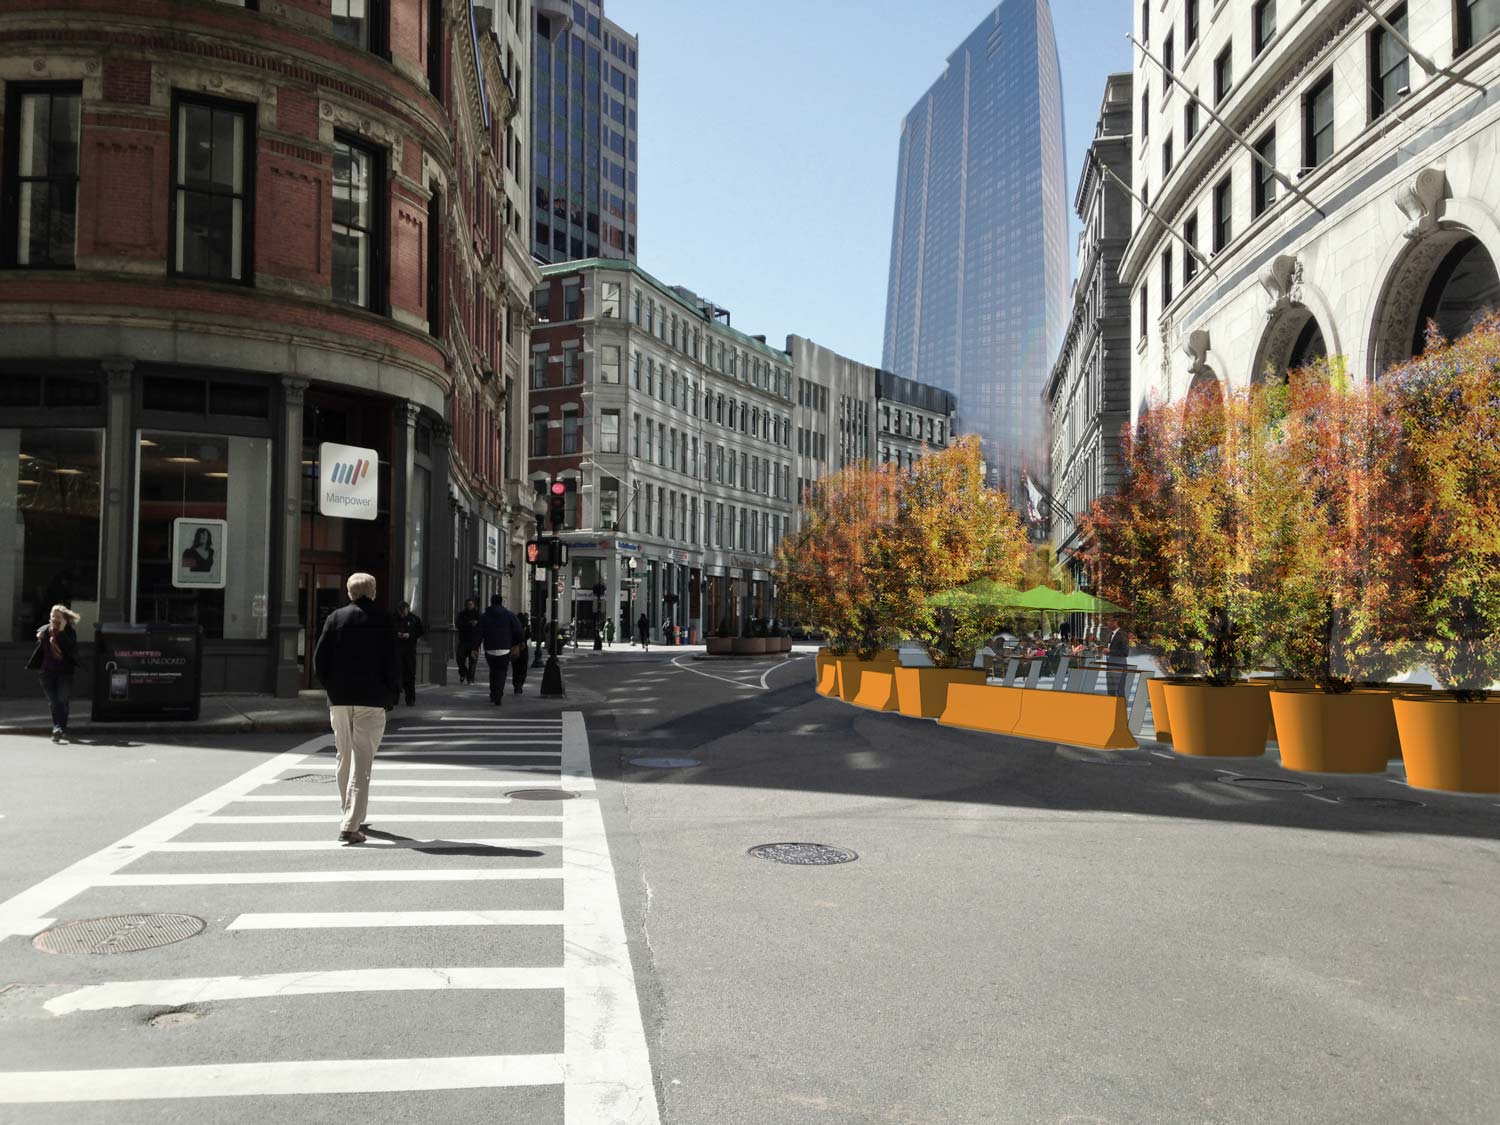 Tontine-Cresent_Boston-Downtown-Business-Improvement-District_KMDG_Rendering-2013.jpg